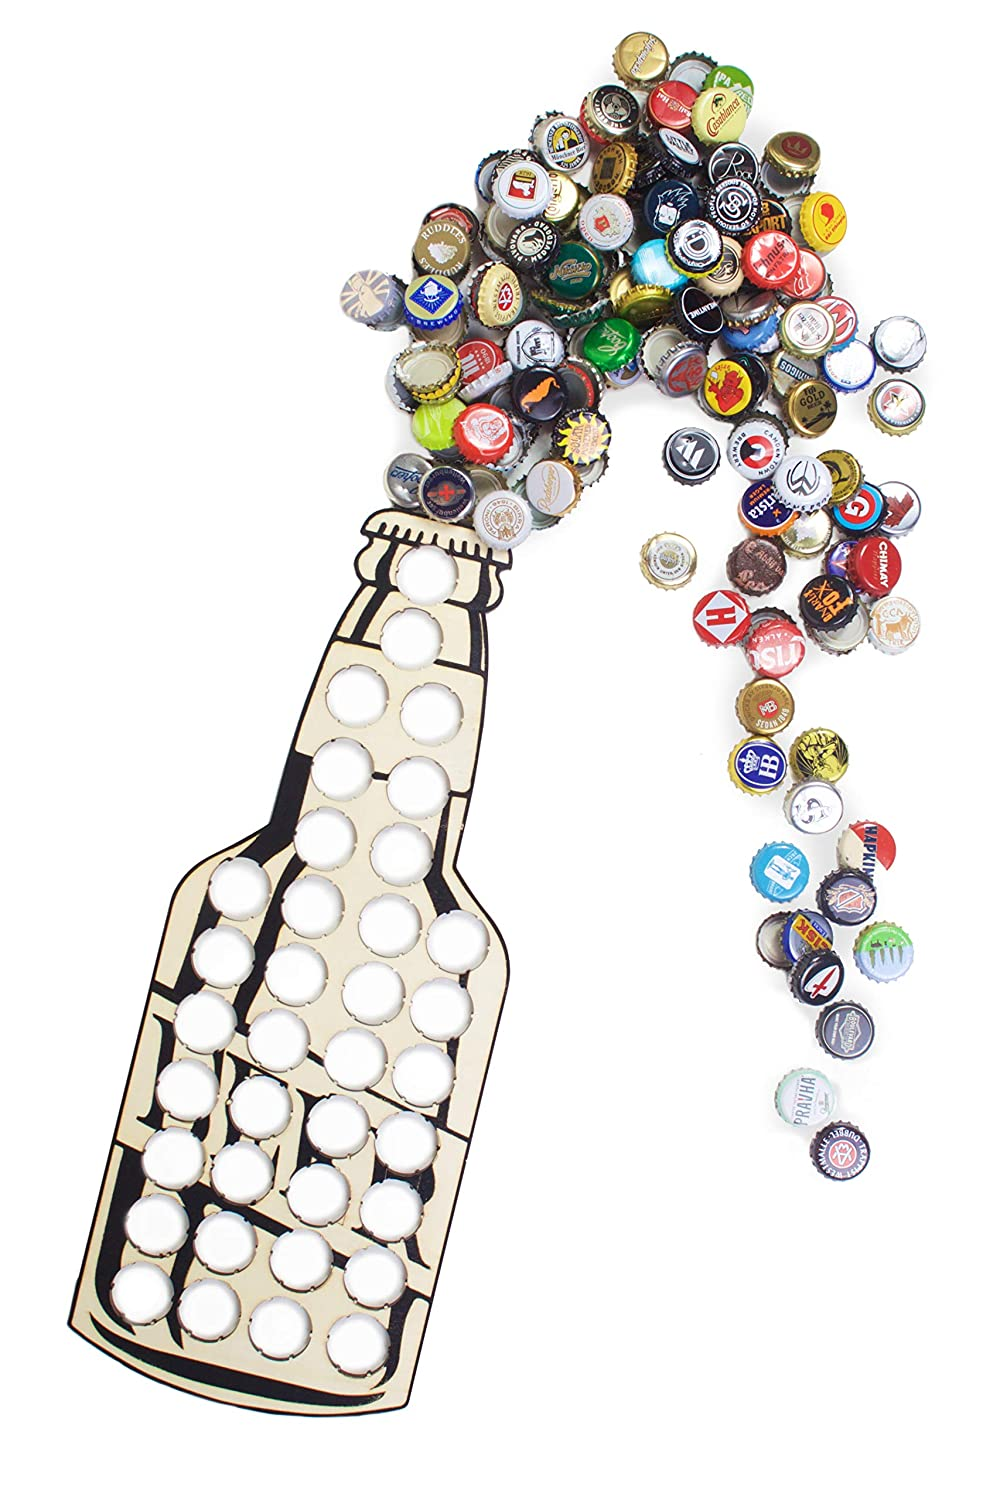 Beer Bottle Cap Holder, Rustic Decor Art for Home, Bar & Man Cave: Wood Display Sign, Unique for Dad & Alcohol Birthday Present for Men, Can Hold 36 Caps, Lacquer Finish, 17 x 6.5 inch